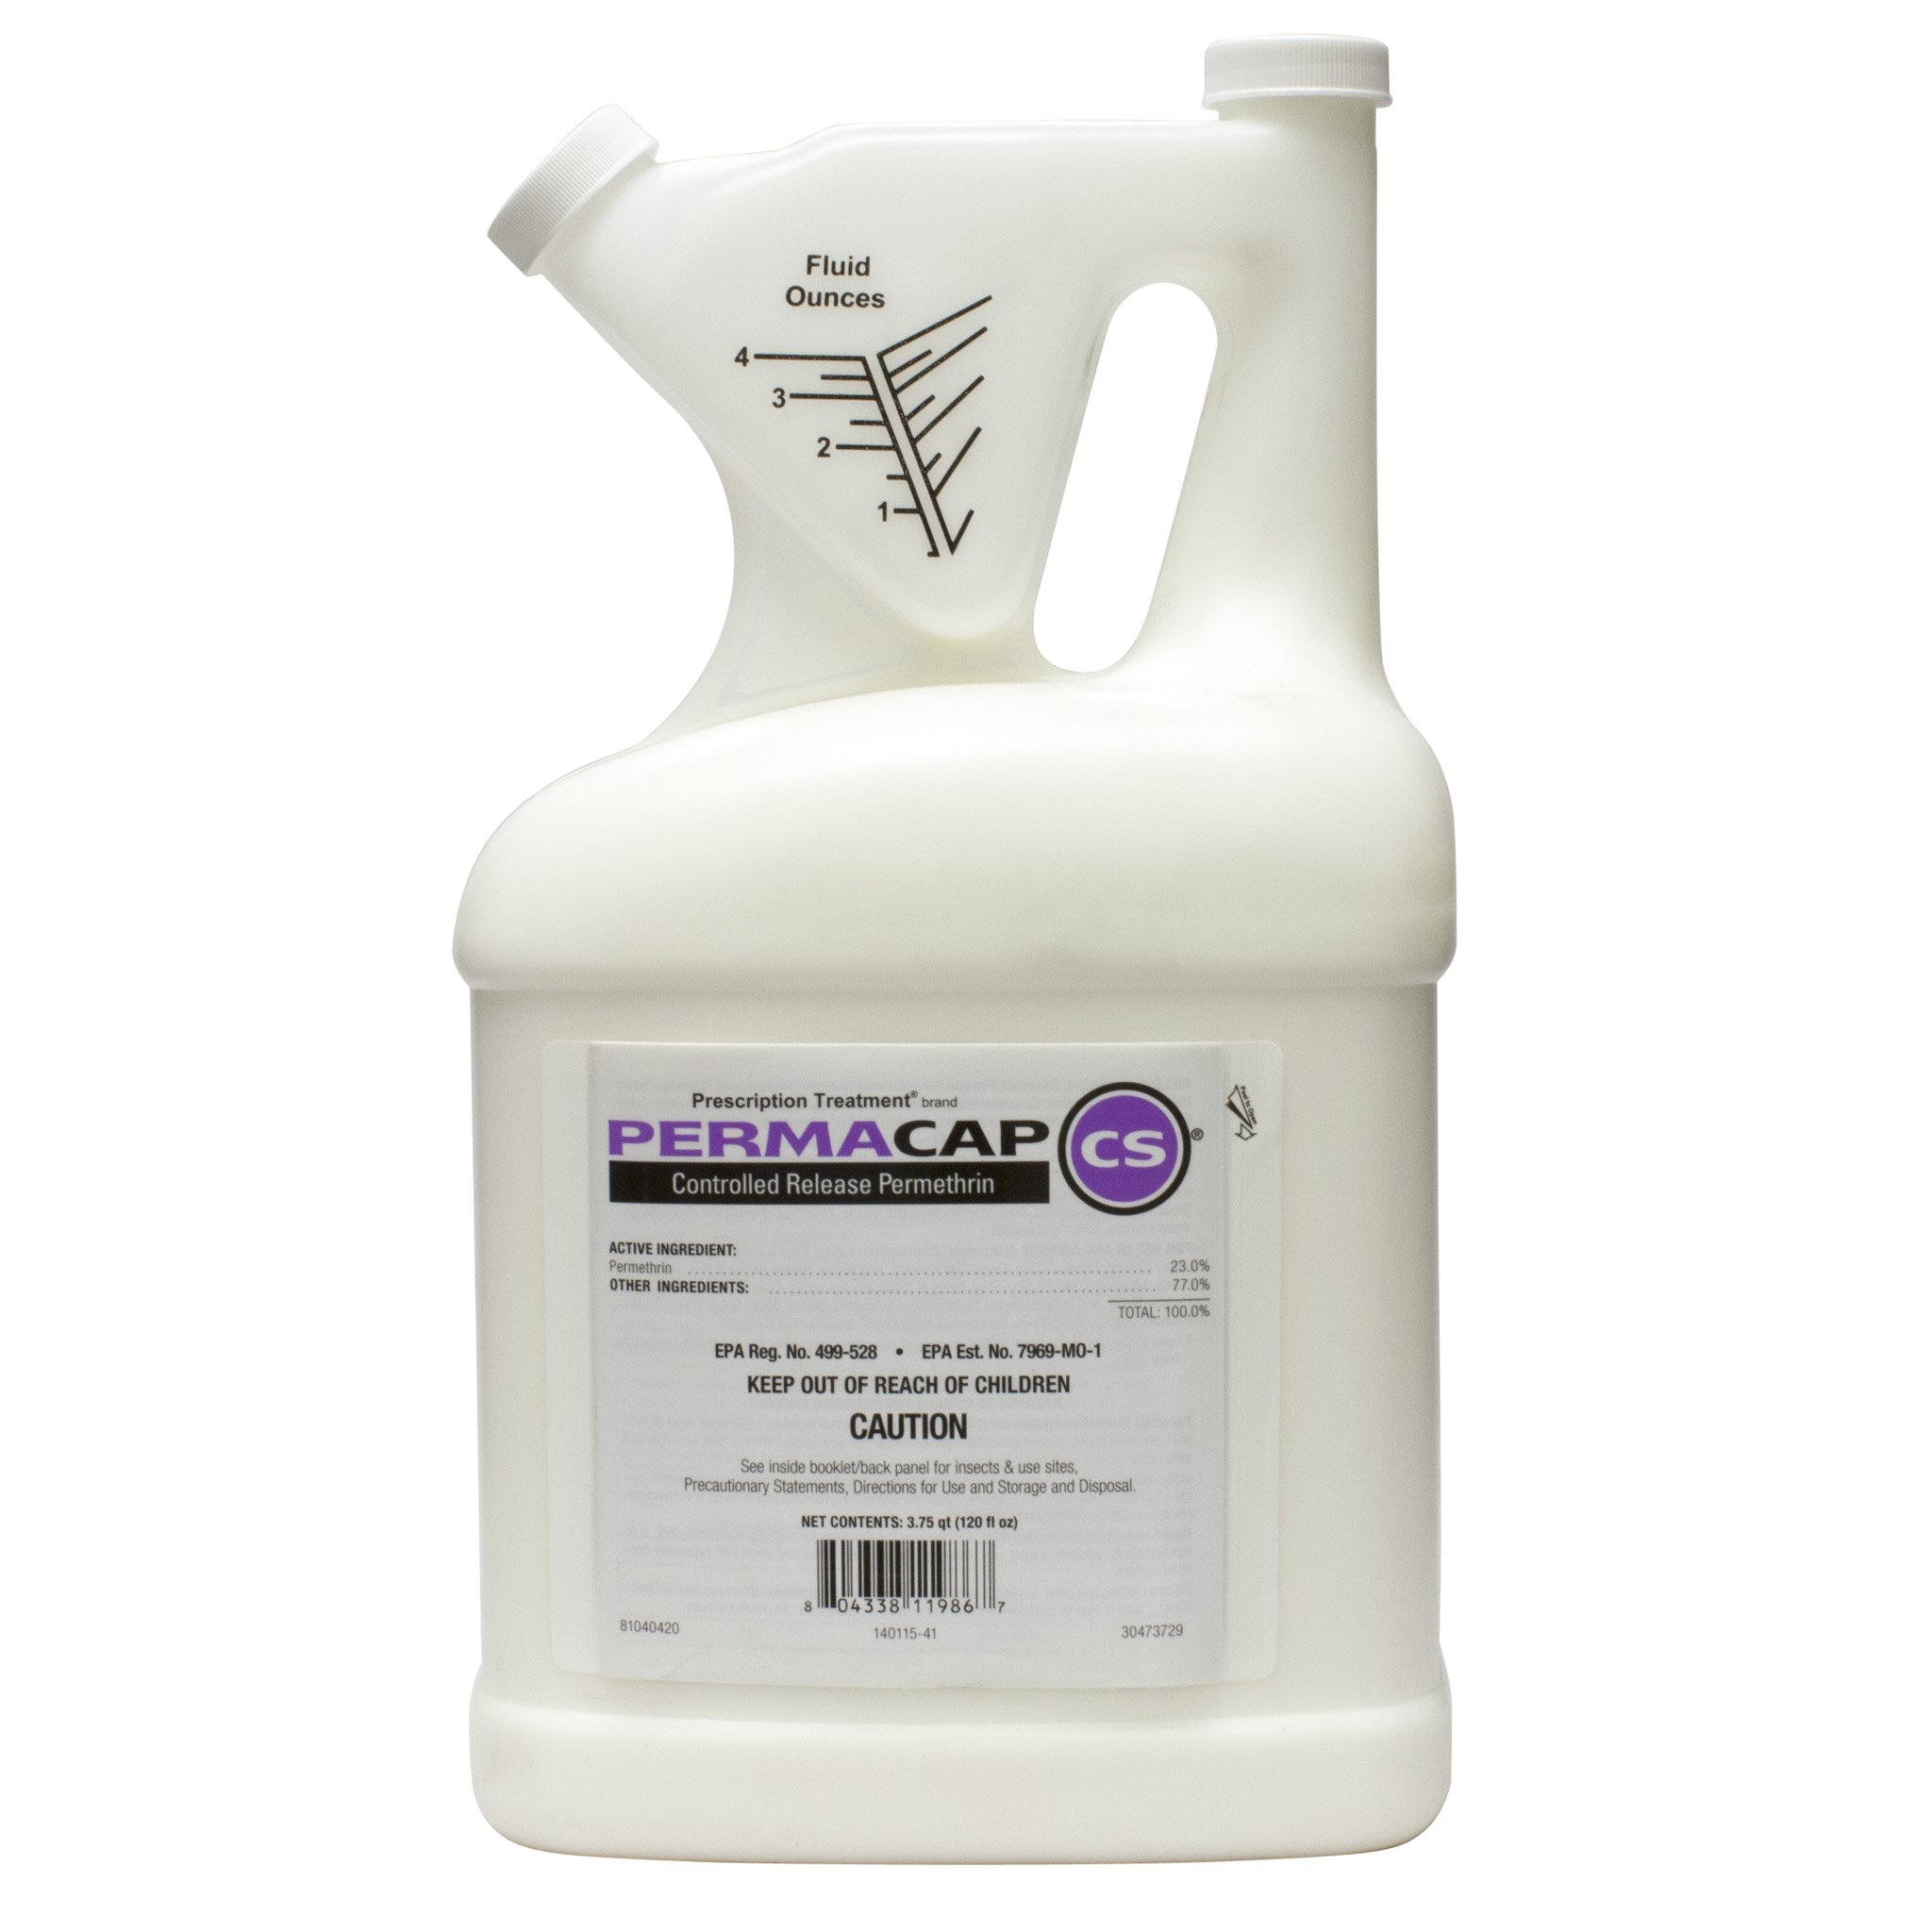 PermaCap CS(Controlled Release Permethrin) 120 Oz.